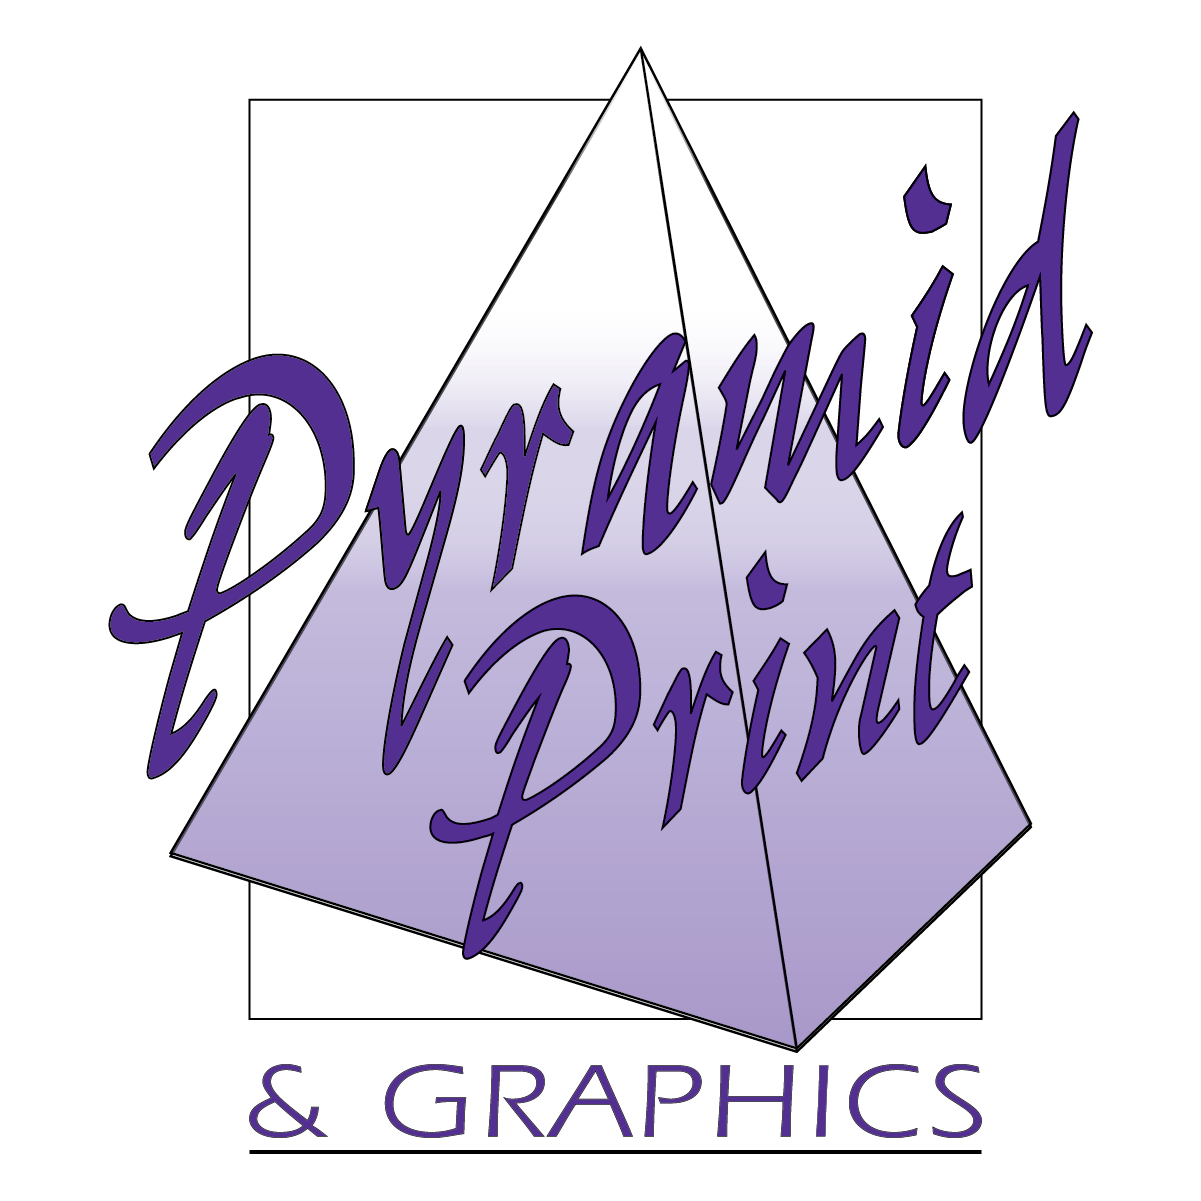 Pyramid Print & Graphics